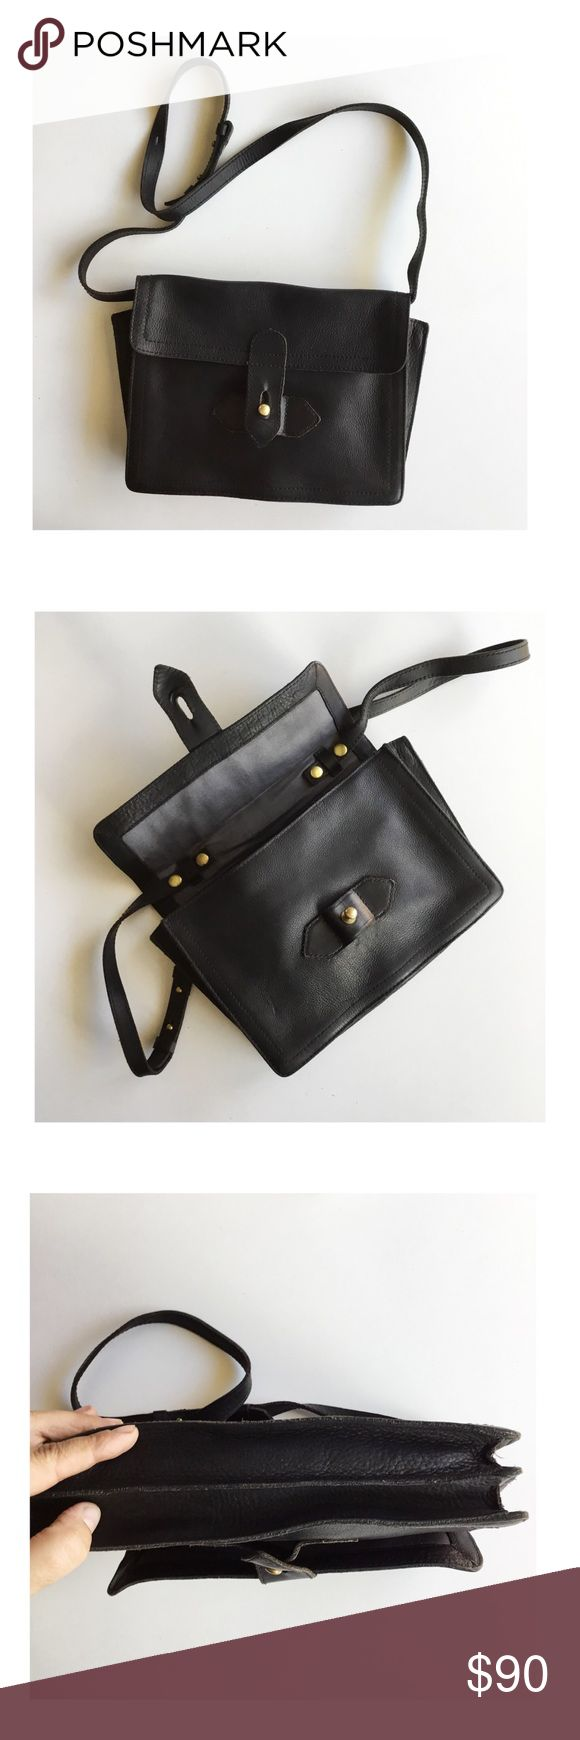 """•Madewell 'Sketchbook' leather purse bag• This beautiful black Madewell bag easily converts from a shoulder bag to a clutch by removing the snap-in strap. Overall good condition, the leather has developed a rich patina giving it a vintage look. The raw leather edges makes it look like that too. 7""""h x 10""""w x 2""""d 18"""" strap drop  100% black leather. Madewell Bags"""